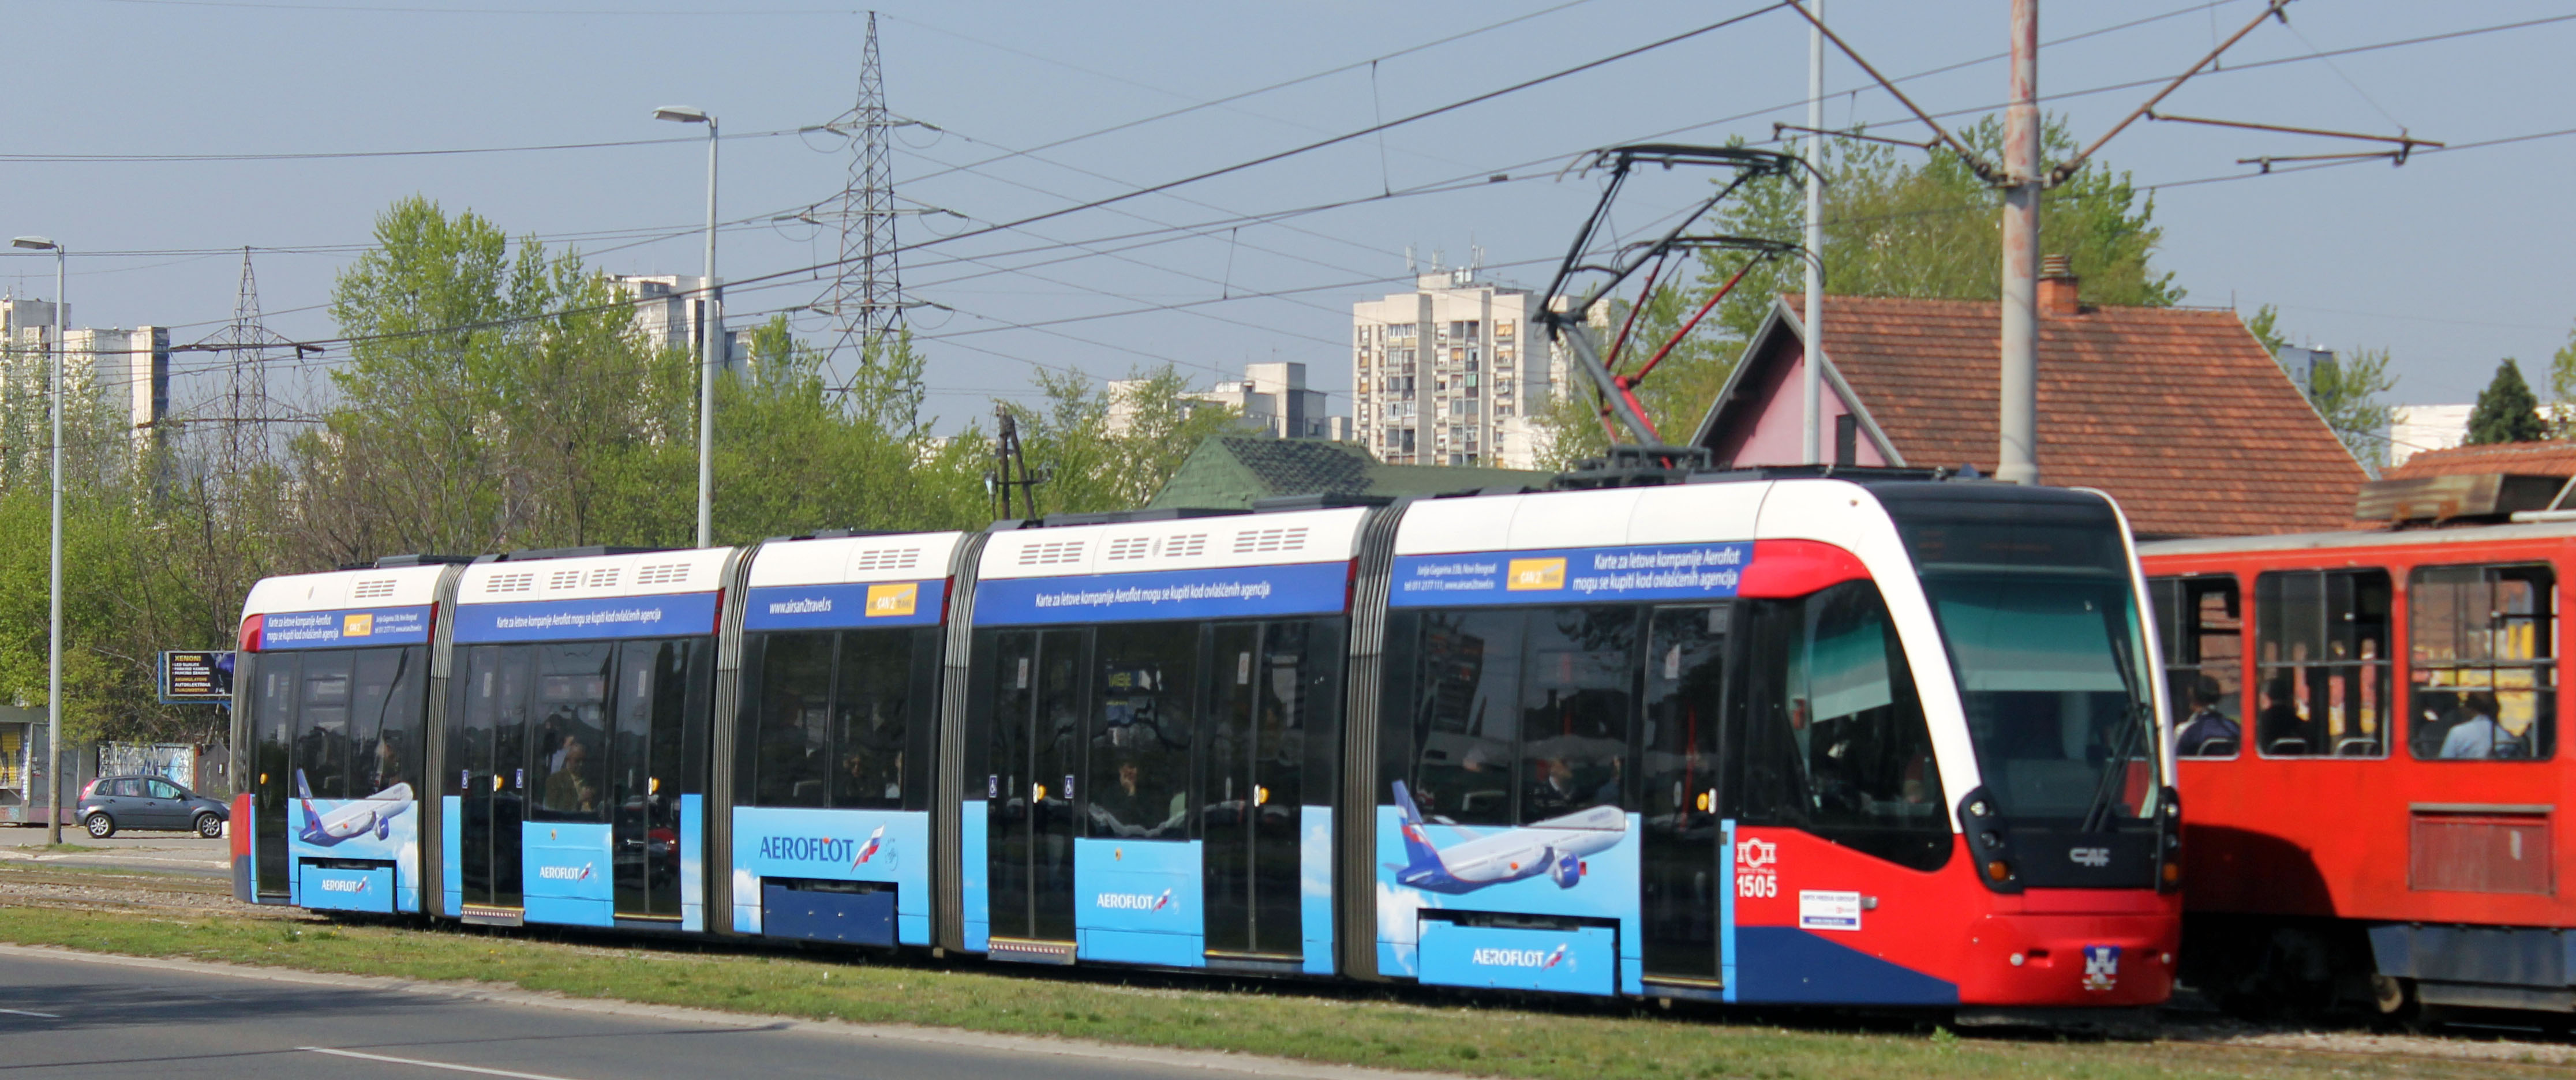 File Caf Gsp Beograd 1505 Jpg Wikimedia Commons